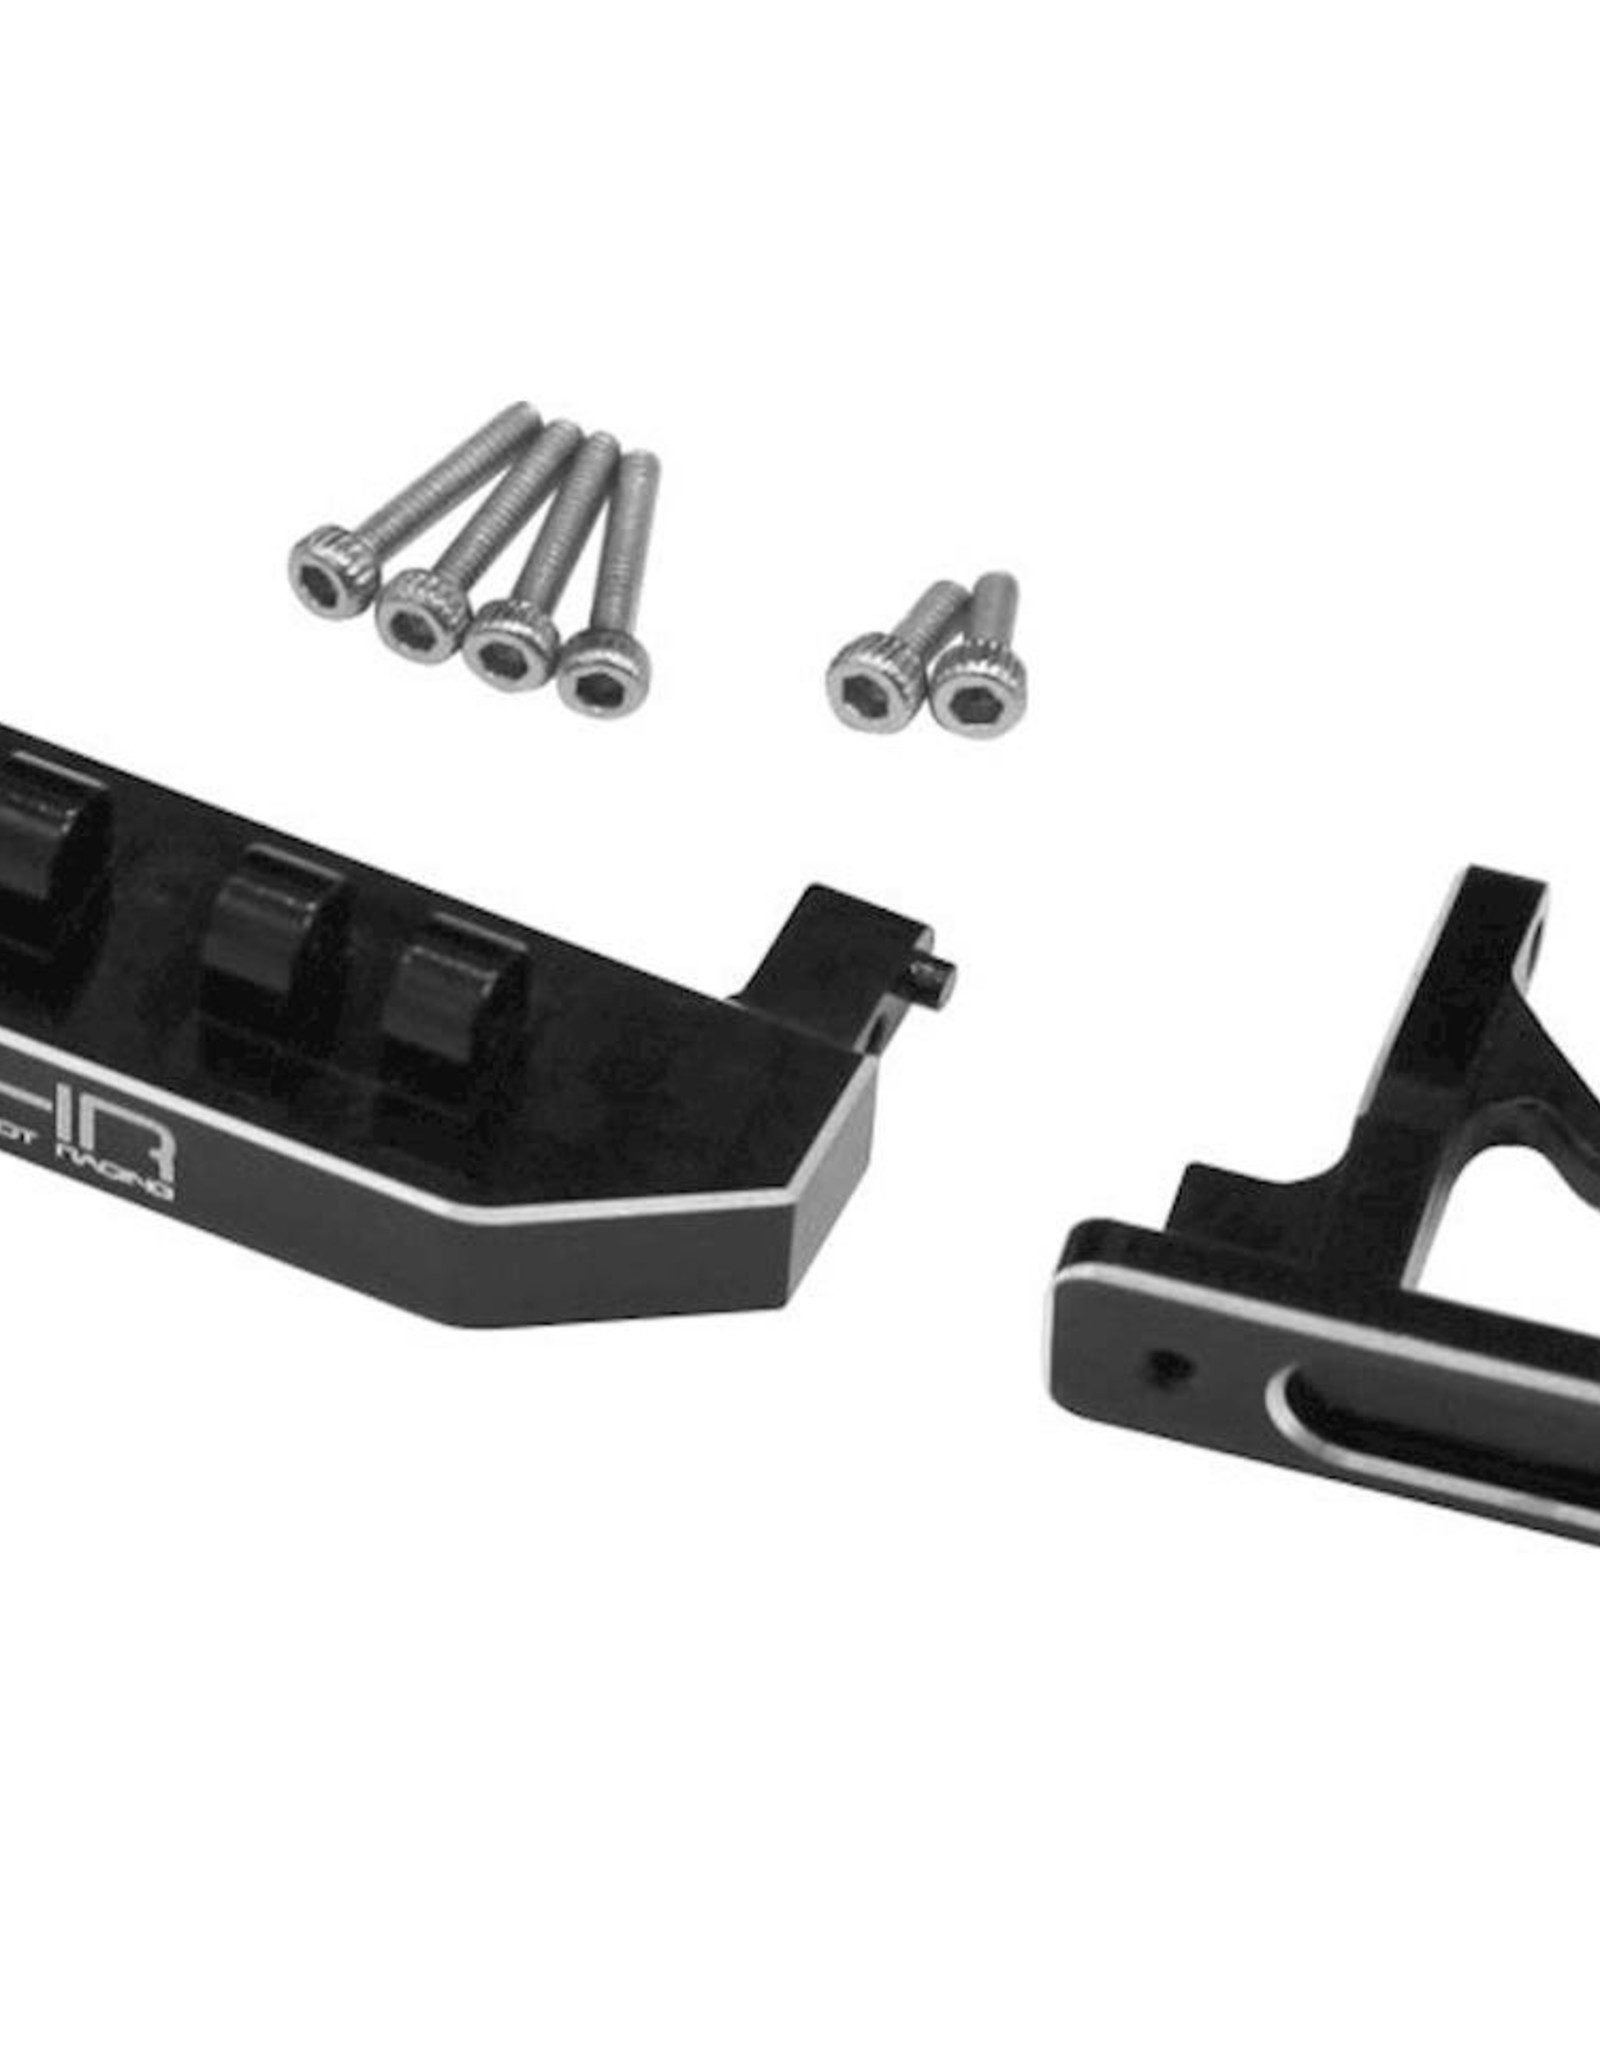 Hot Racing Hot Racing Axial SCX24 Aluminum Rear Body Mount Support